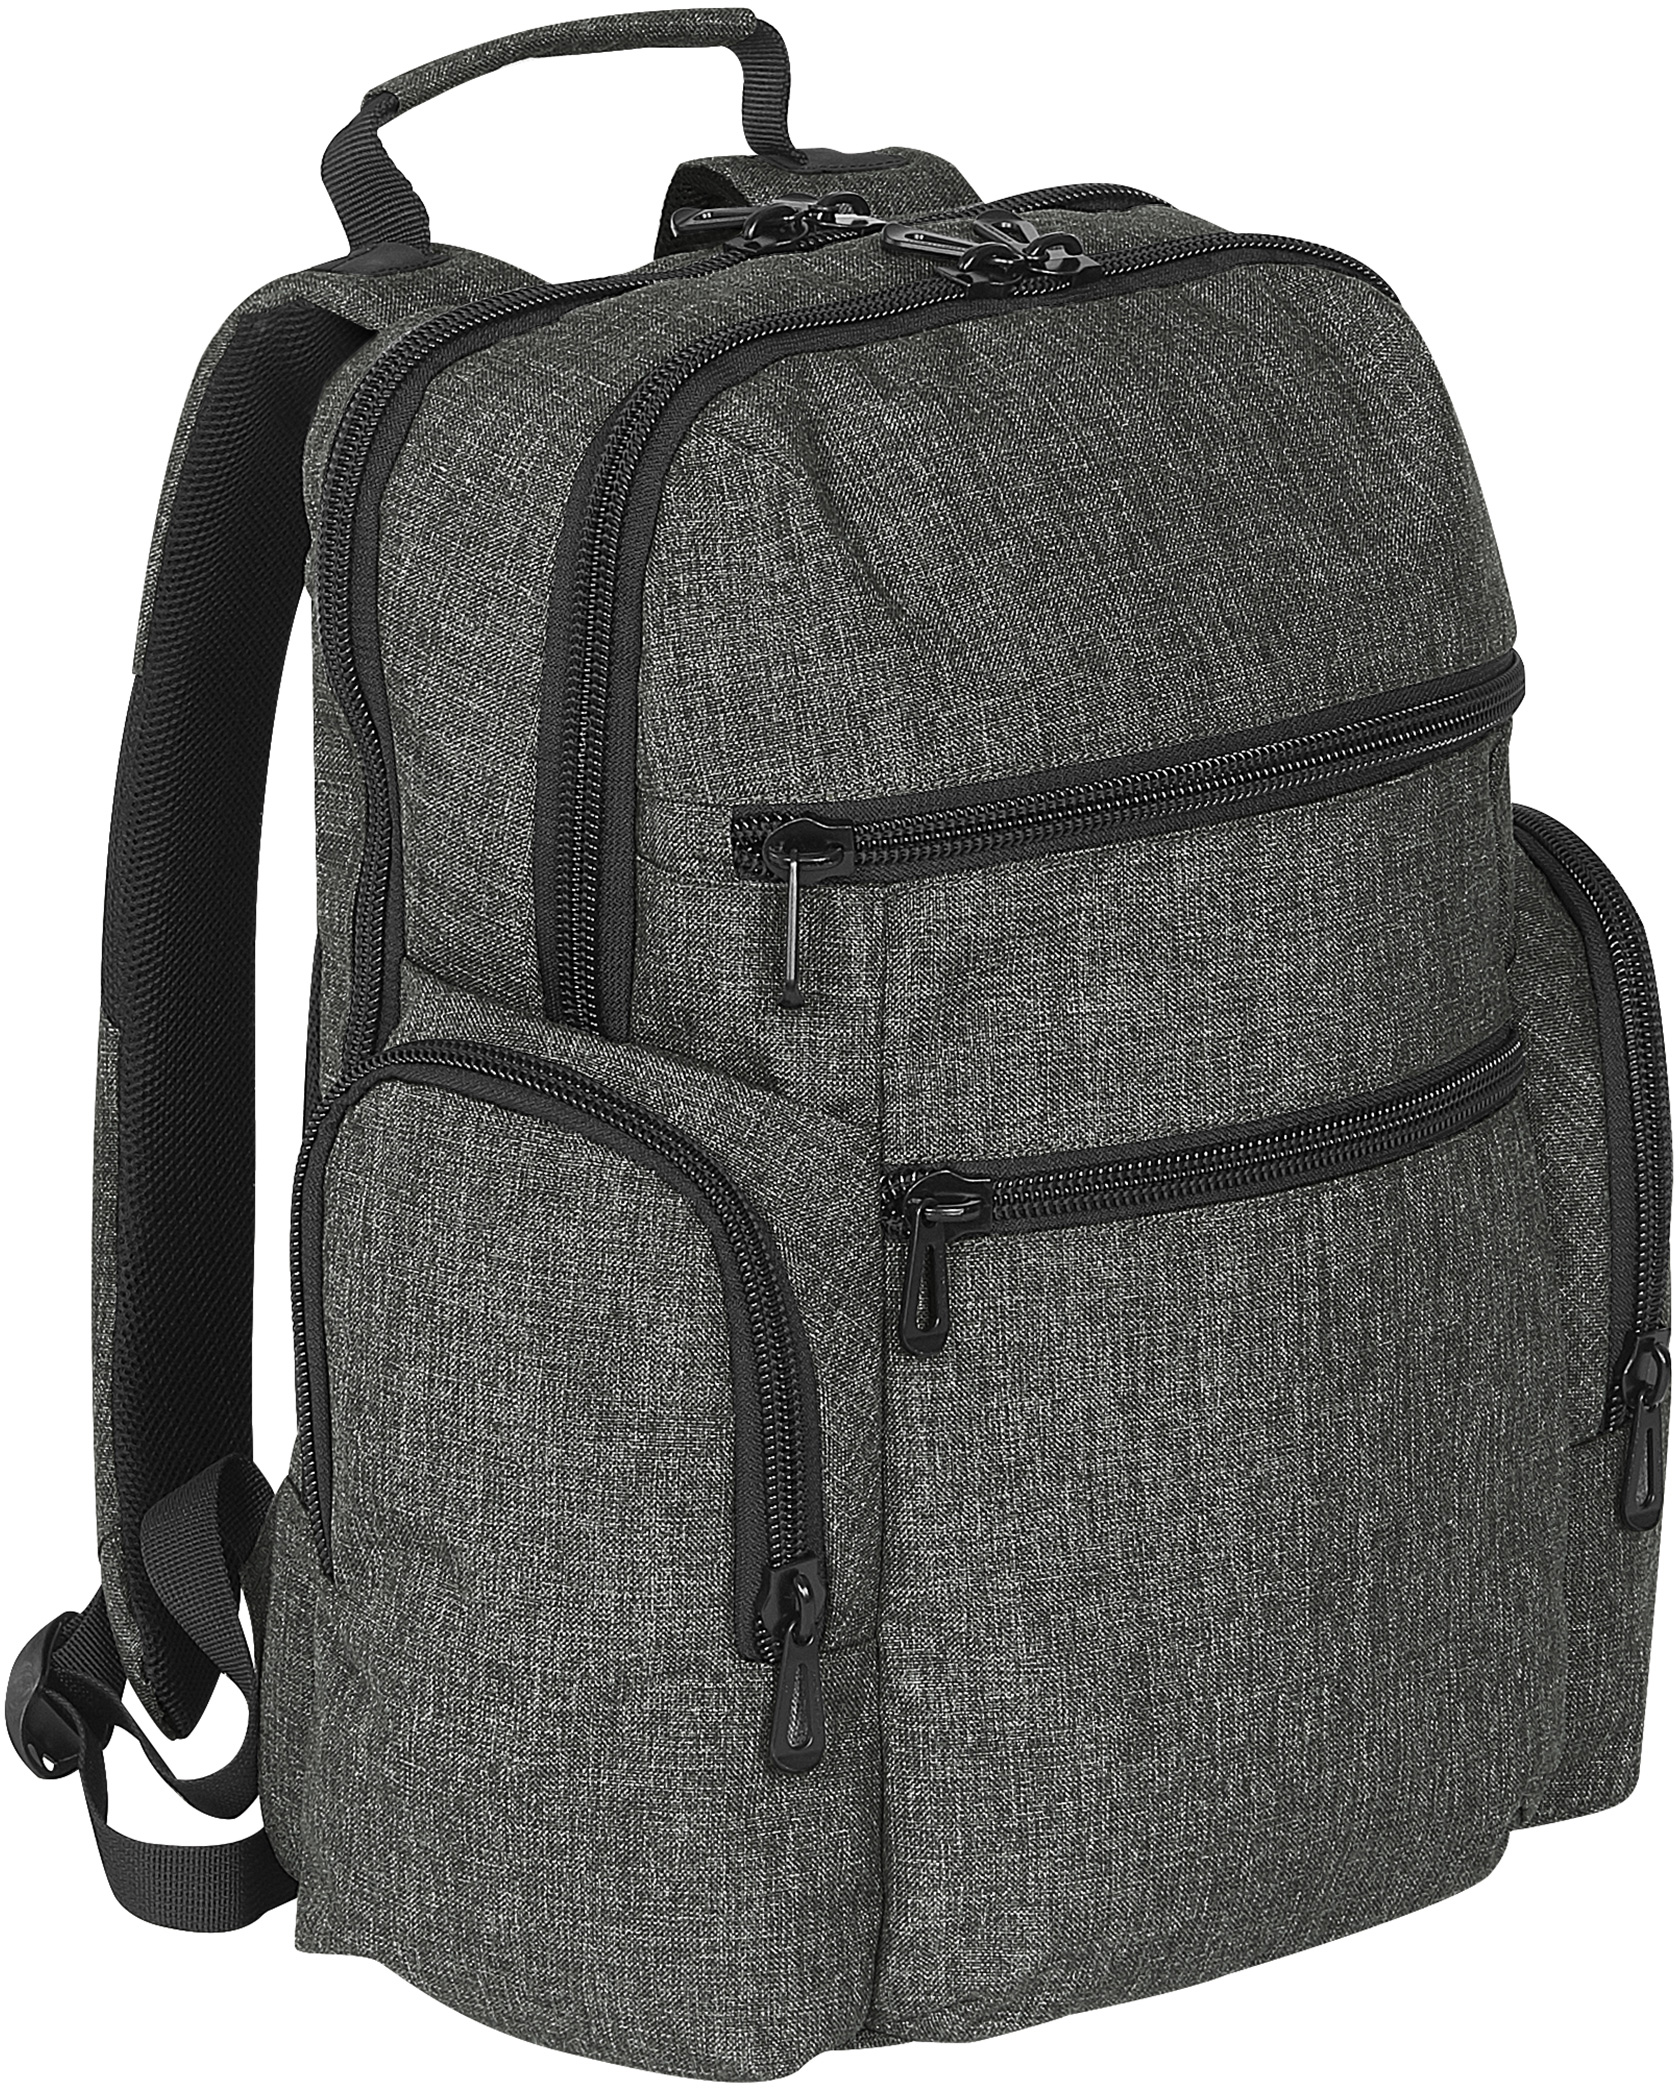 Stormtech Epb 1 Odyssey Executive Backpack